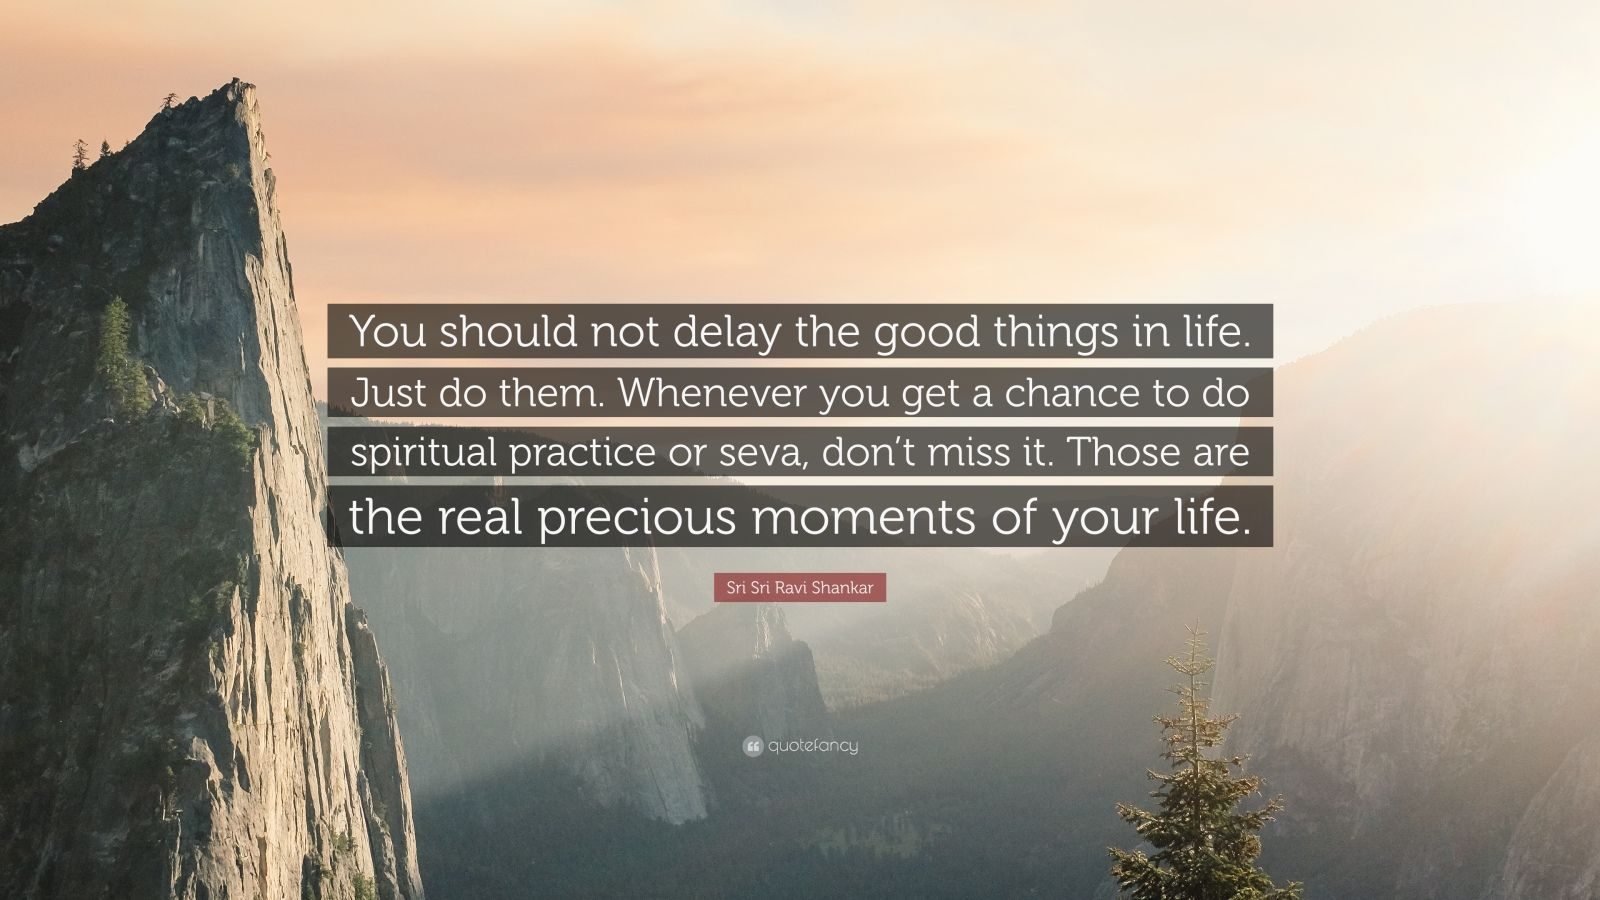 """Sri Sri Ravi Shankar Quote: """"You should not delay the good things in life. Just do them. Whenever you get a chance to do spiritual practice or seva, don't miss it. Those are the real precious moments of your life."""""""